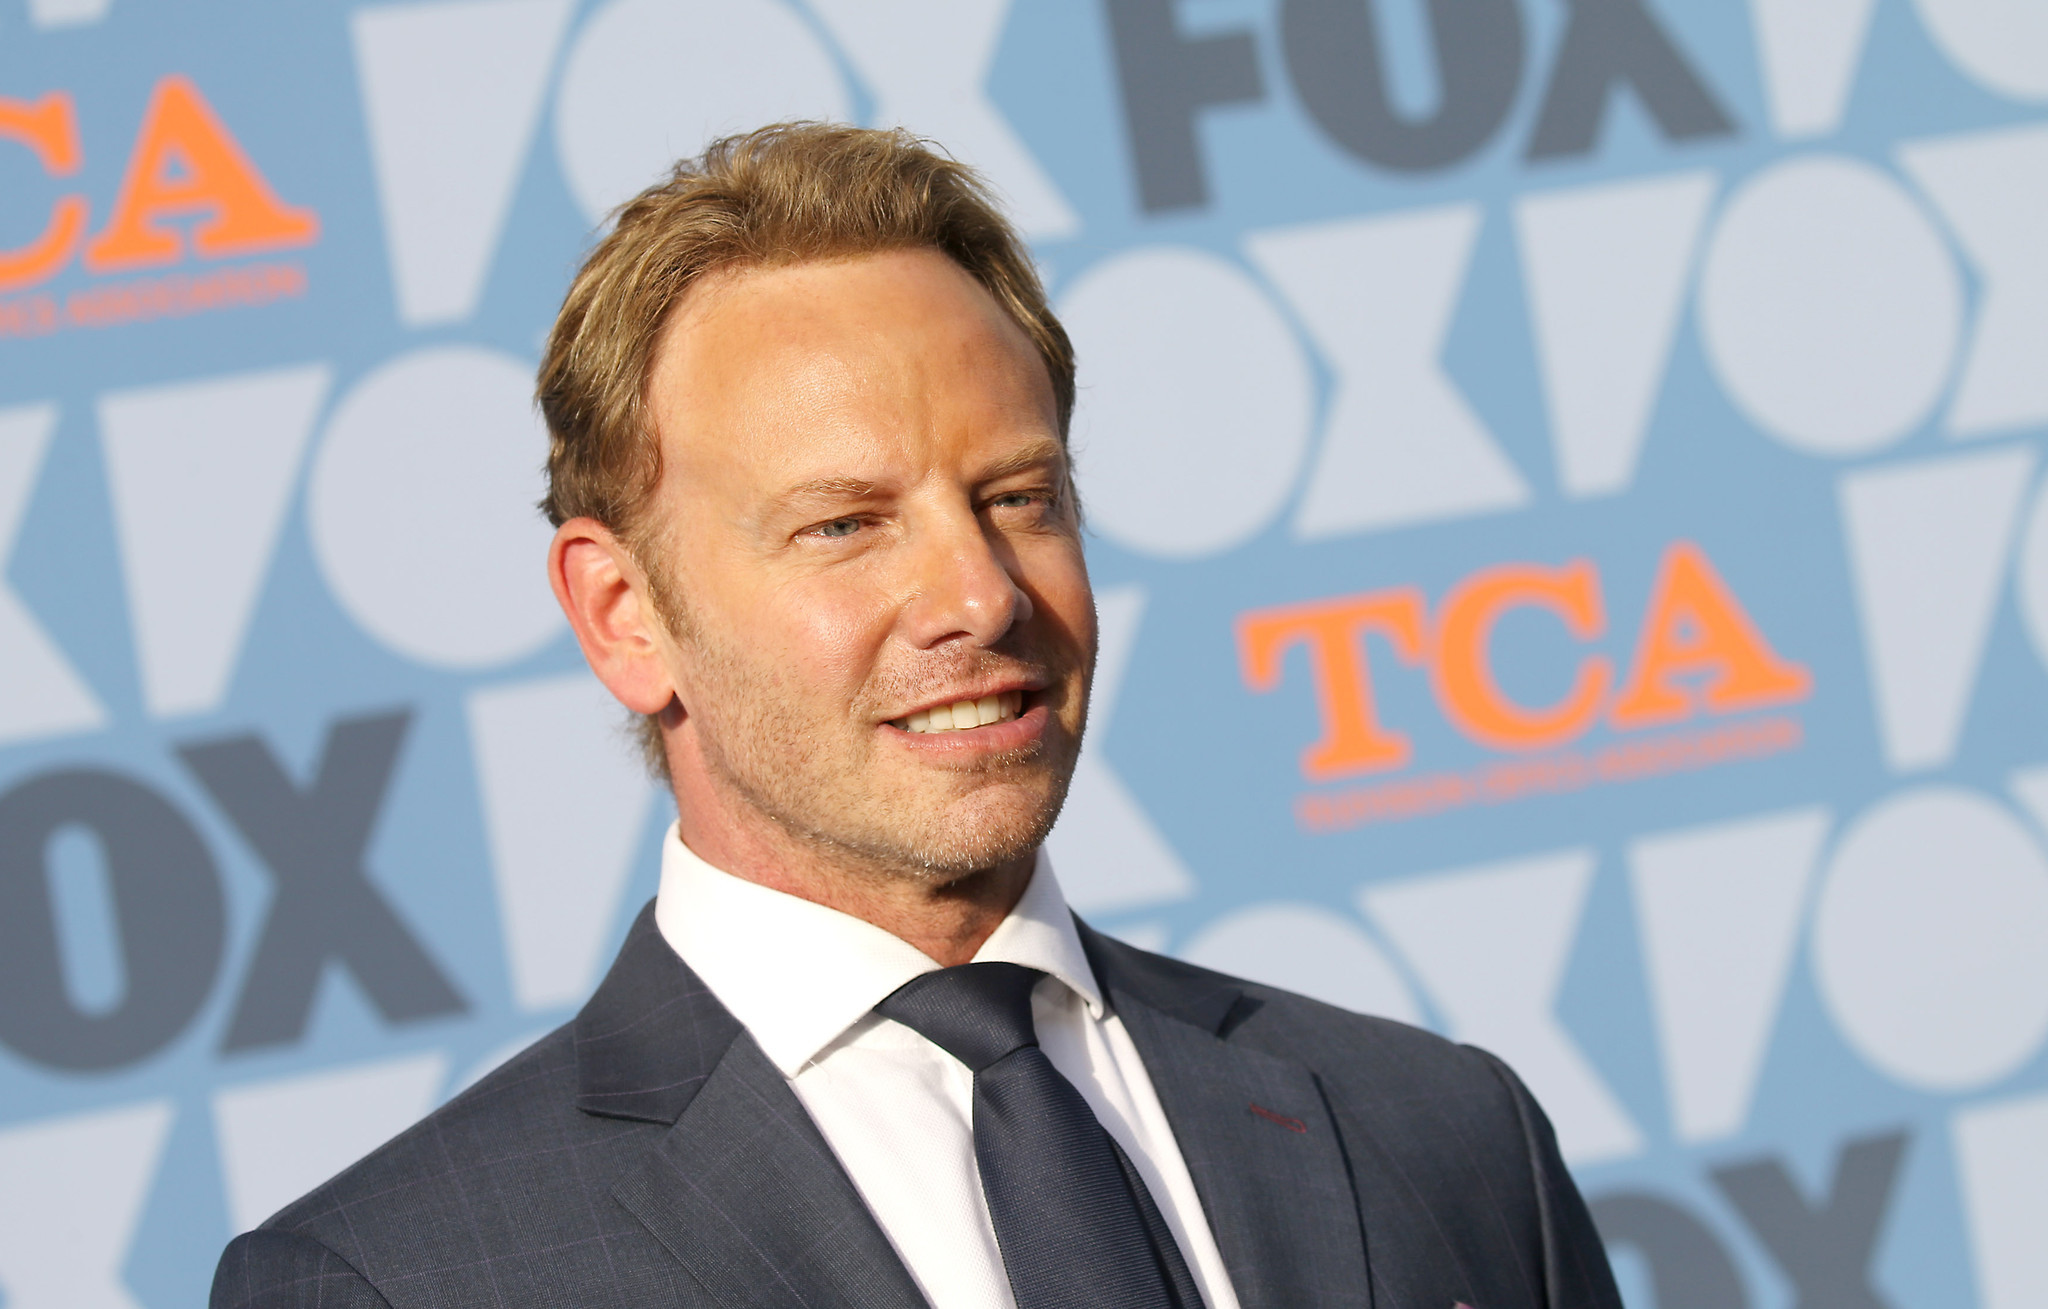 '90210' star Ian Ziering splitting from wife Erin after 9 years